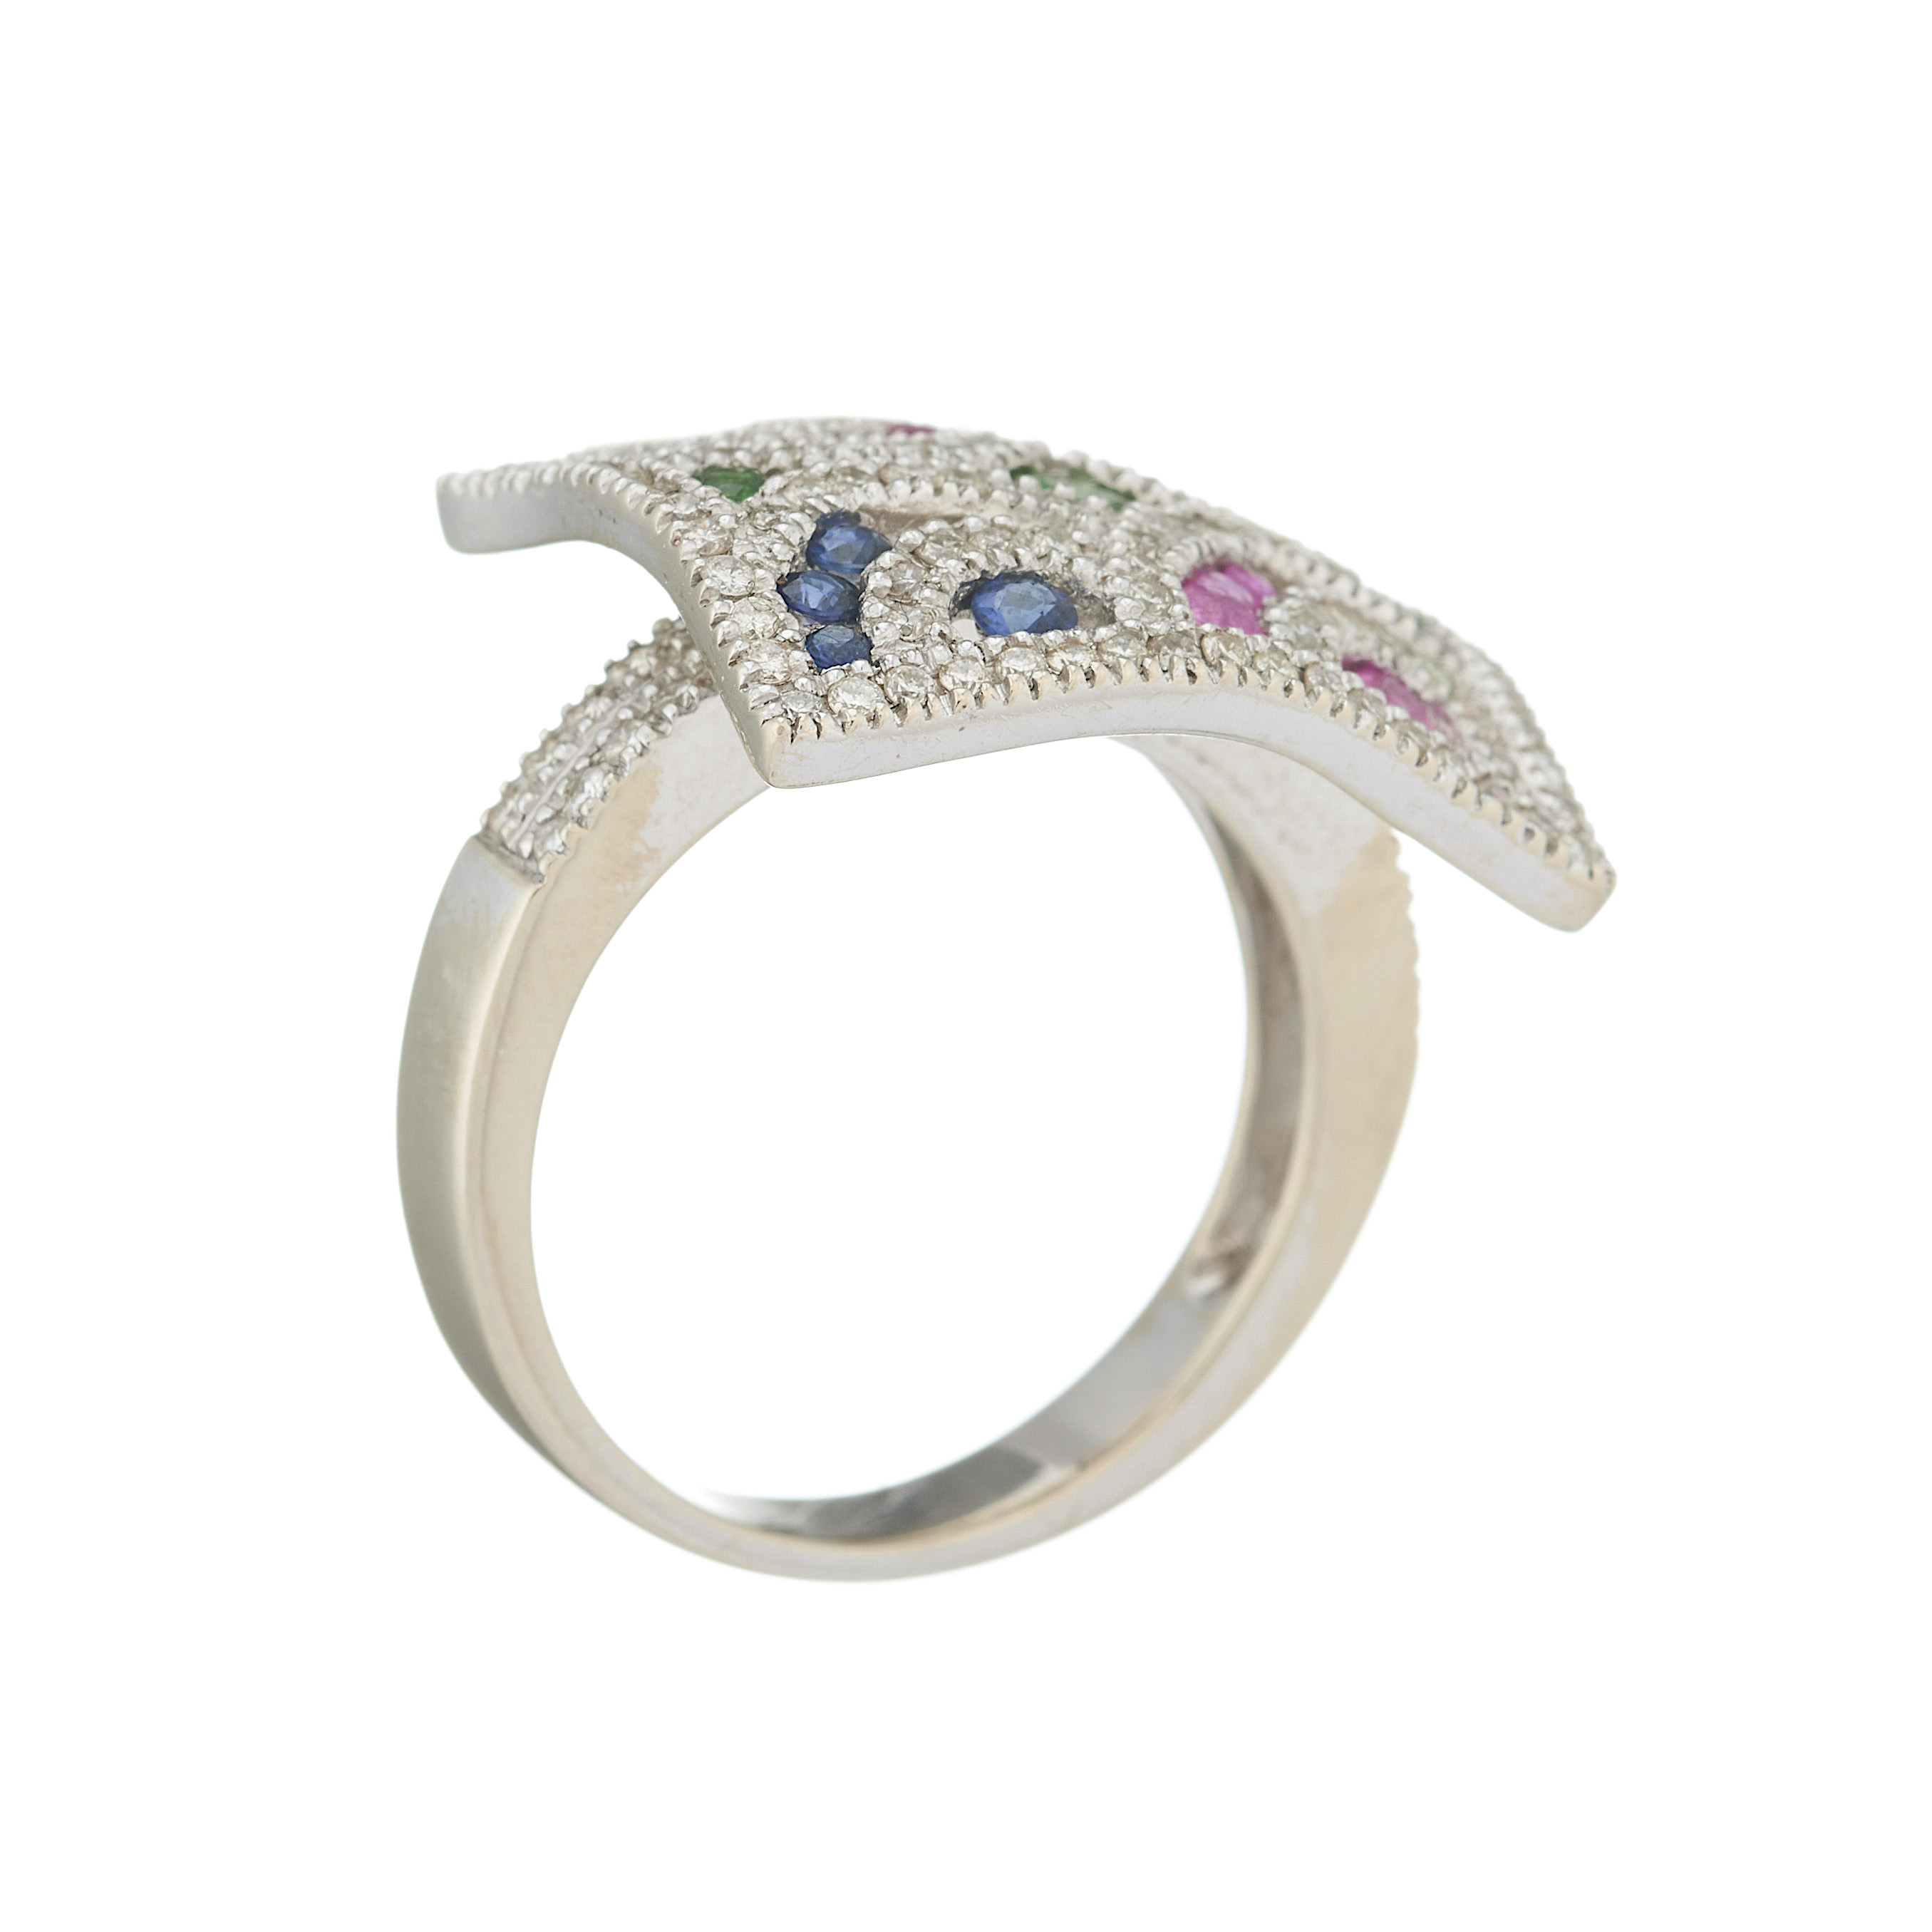 A 14ct gold diamond and multi-gem dress ring - Image 2 of 2